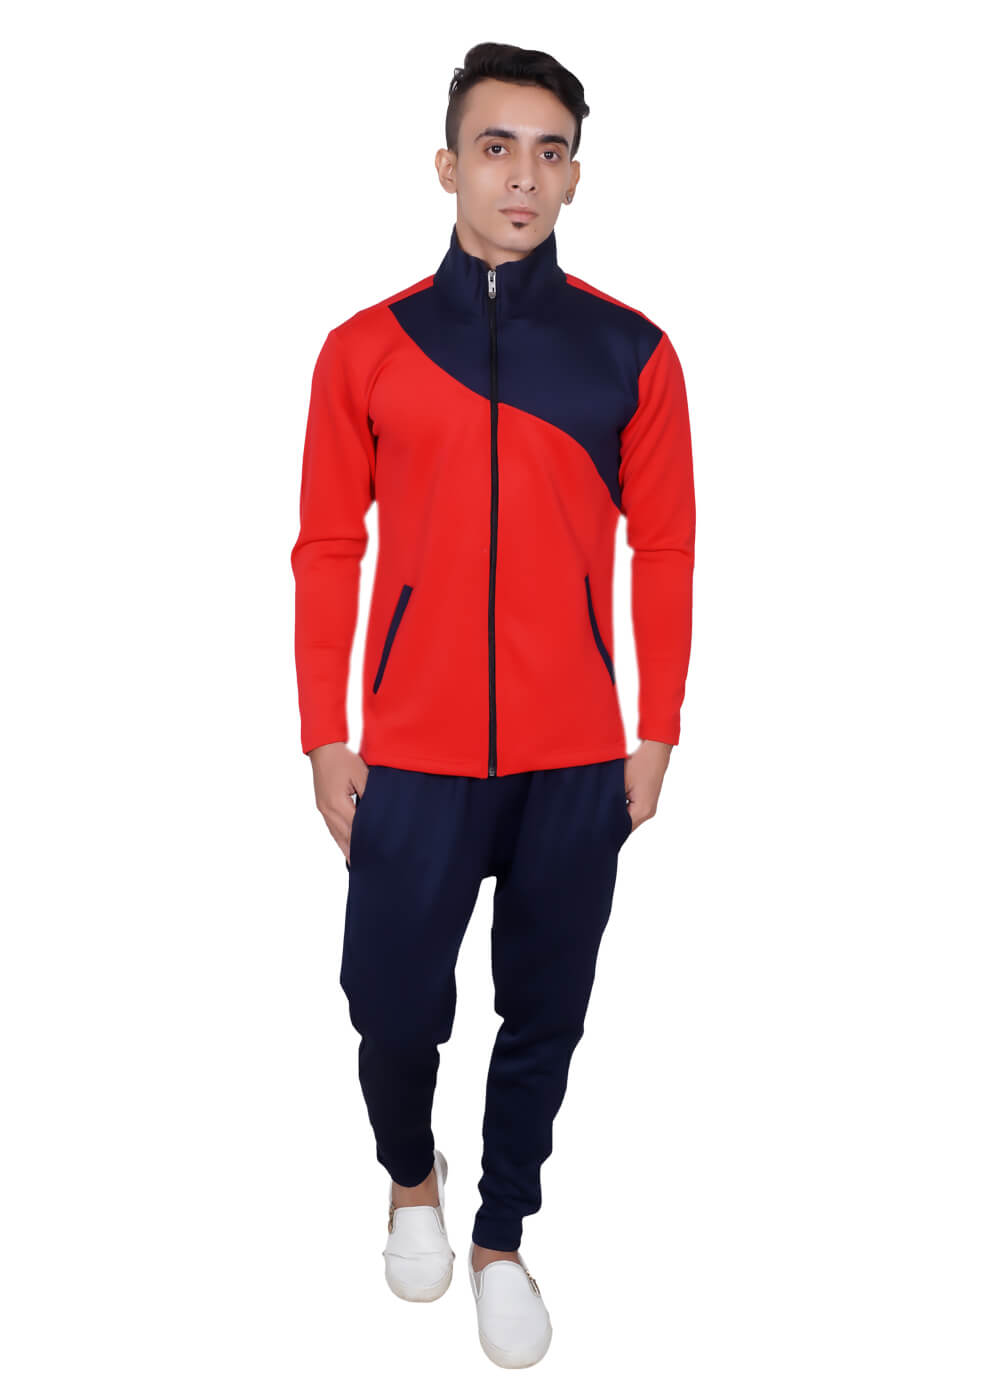 Cheap Tracksuits Manufacturers in Algeria